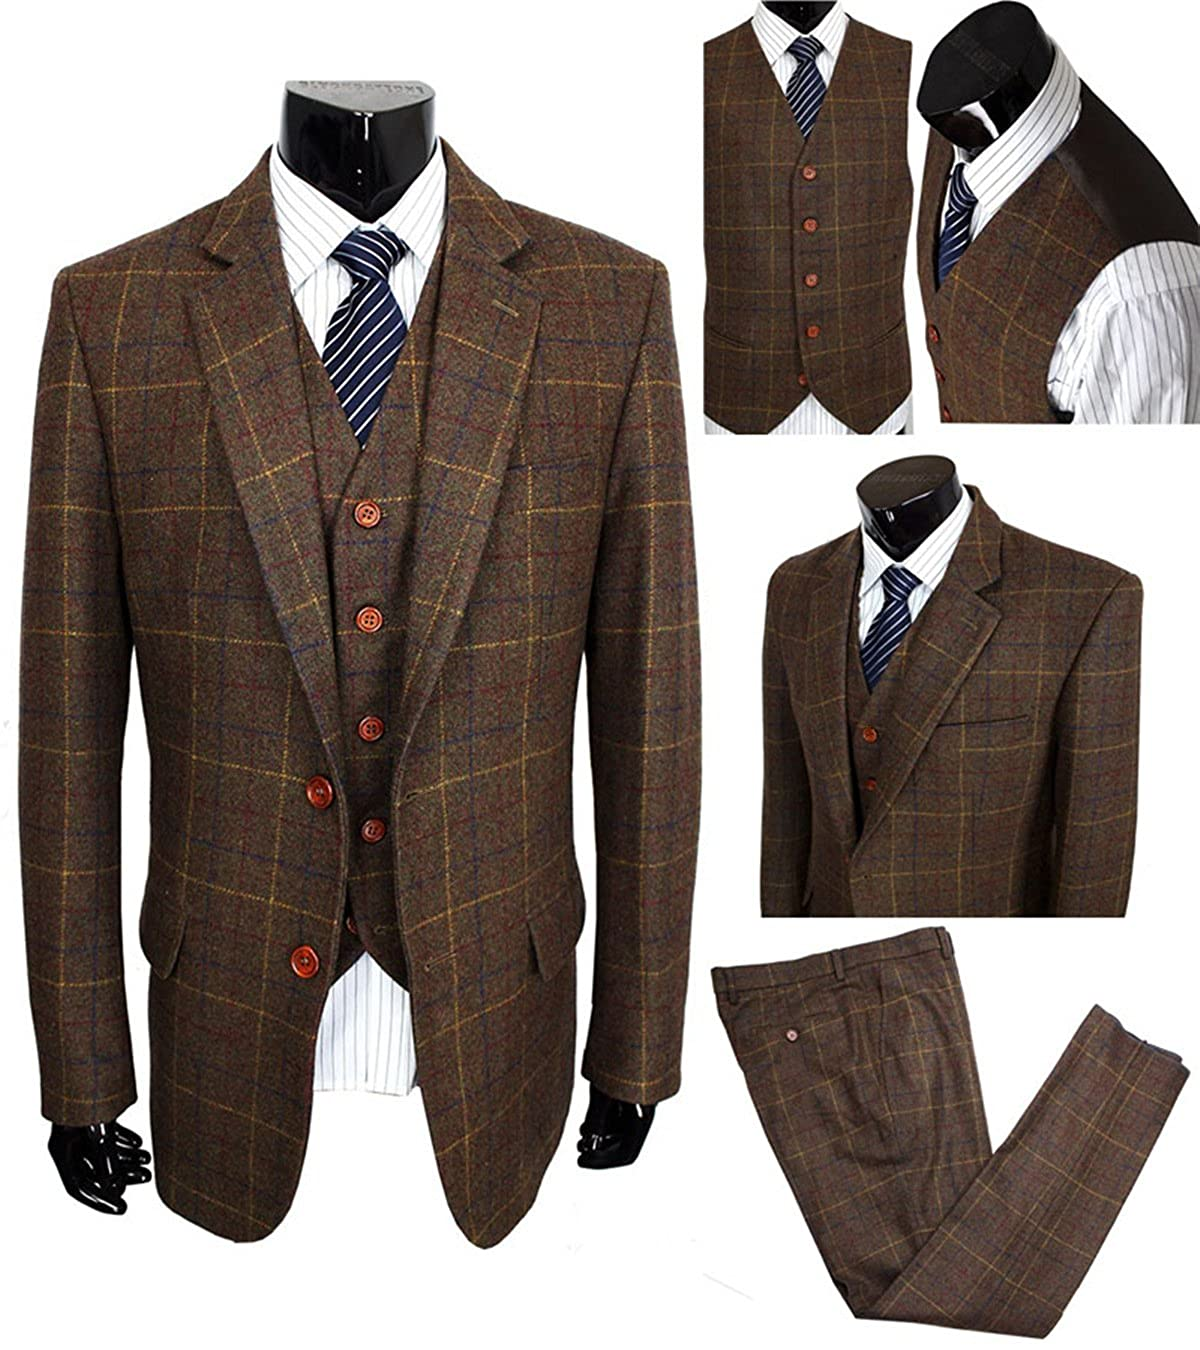 Yunjia Classic Vintage Brown Tweed Herringbone Wool Blend Men Suit 3 Pieces Check Plaid Dark Green Striped Blazer